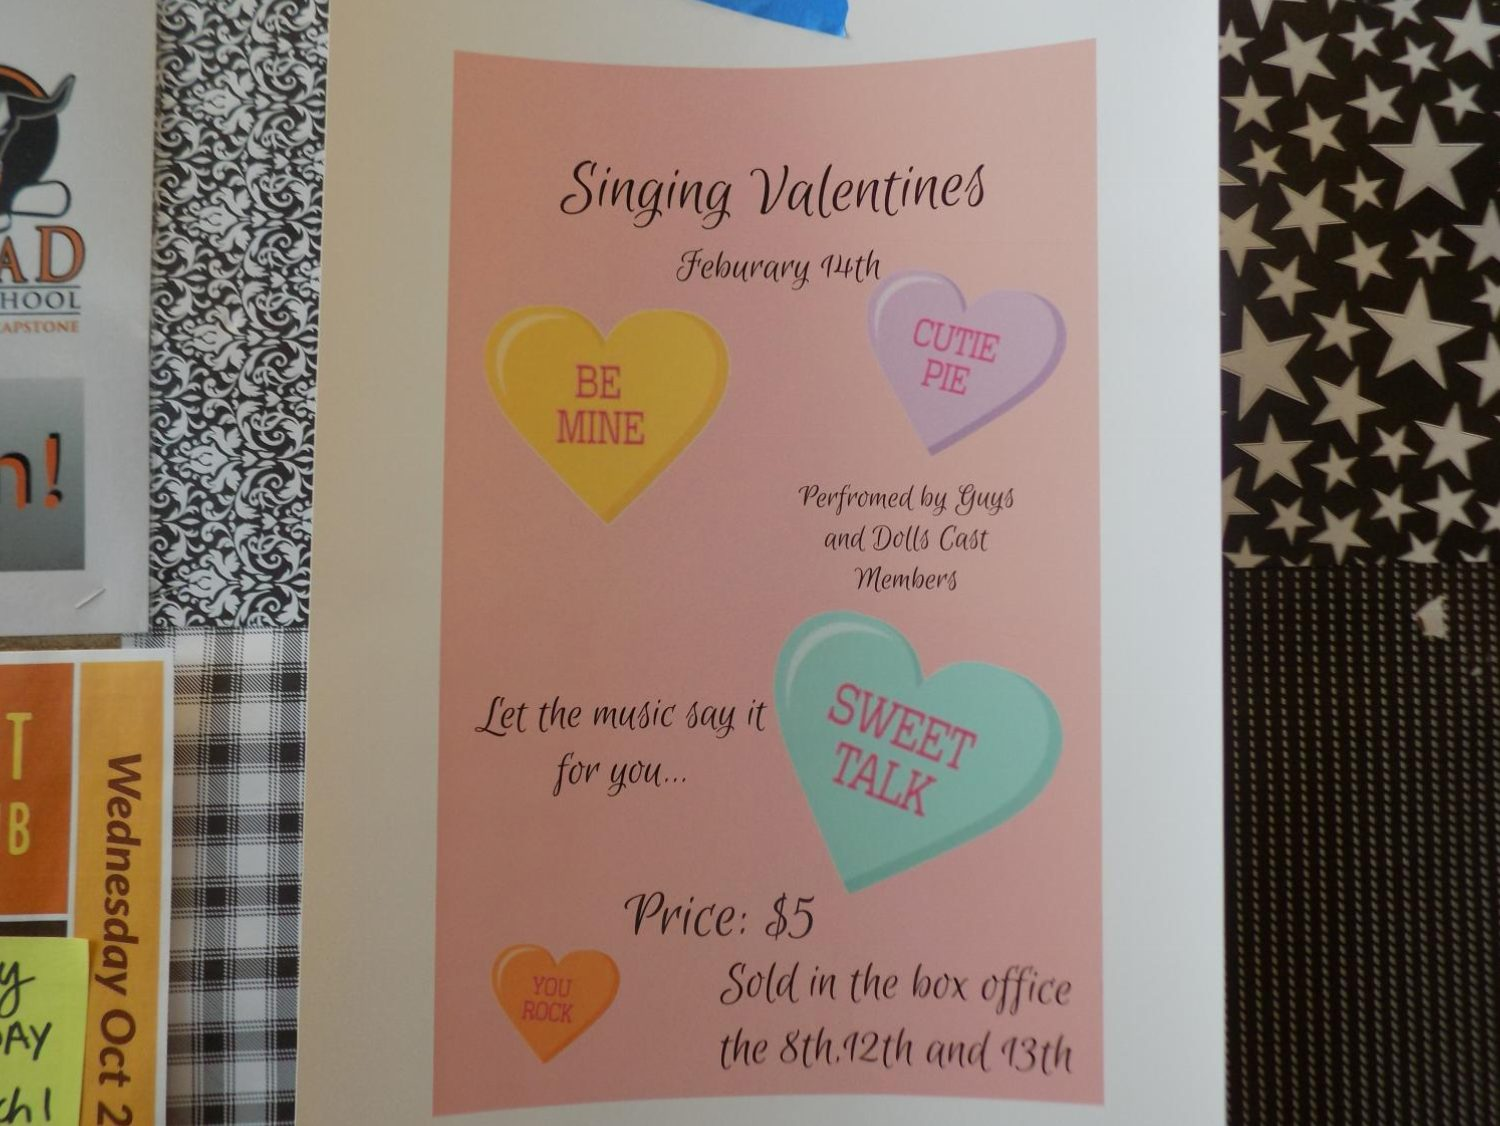 MHS' 2018 Singing Valentines Day poster.